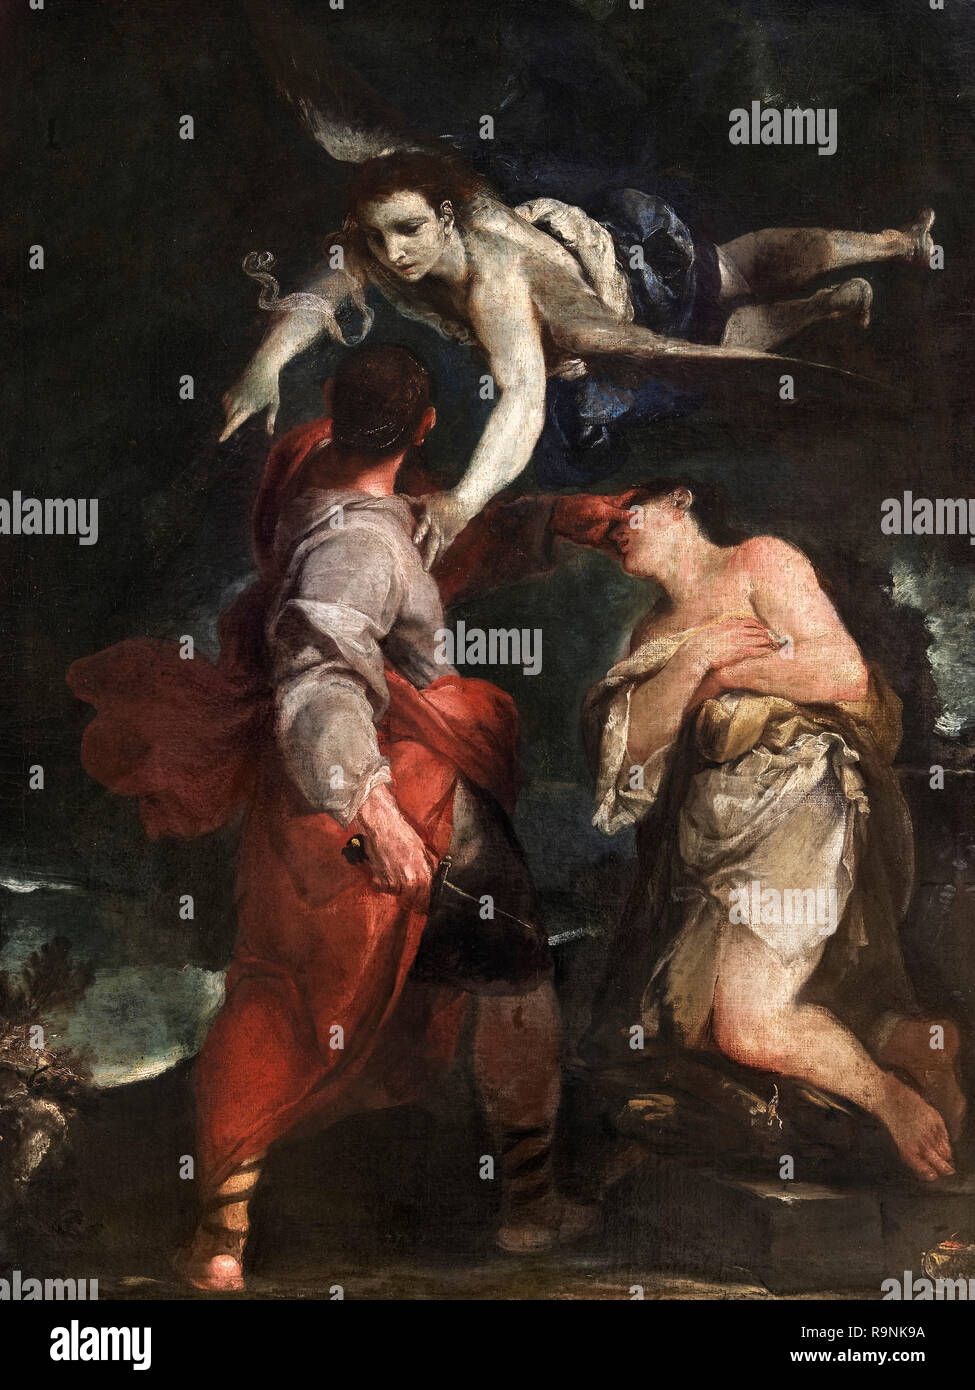 The Sacrifice of Abraham by Giuseppe Maria Crespi (1665-1747), oil on canvas, 1690s - Stock Image